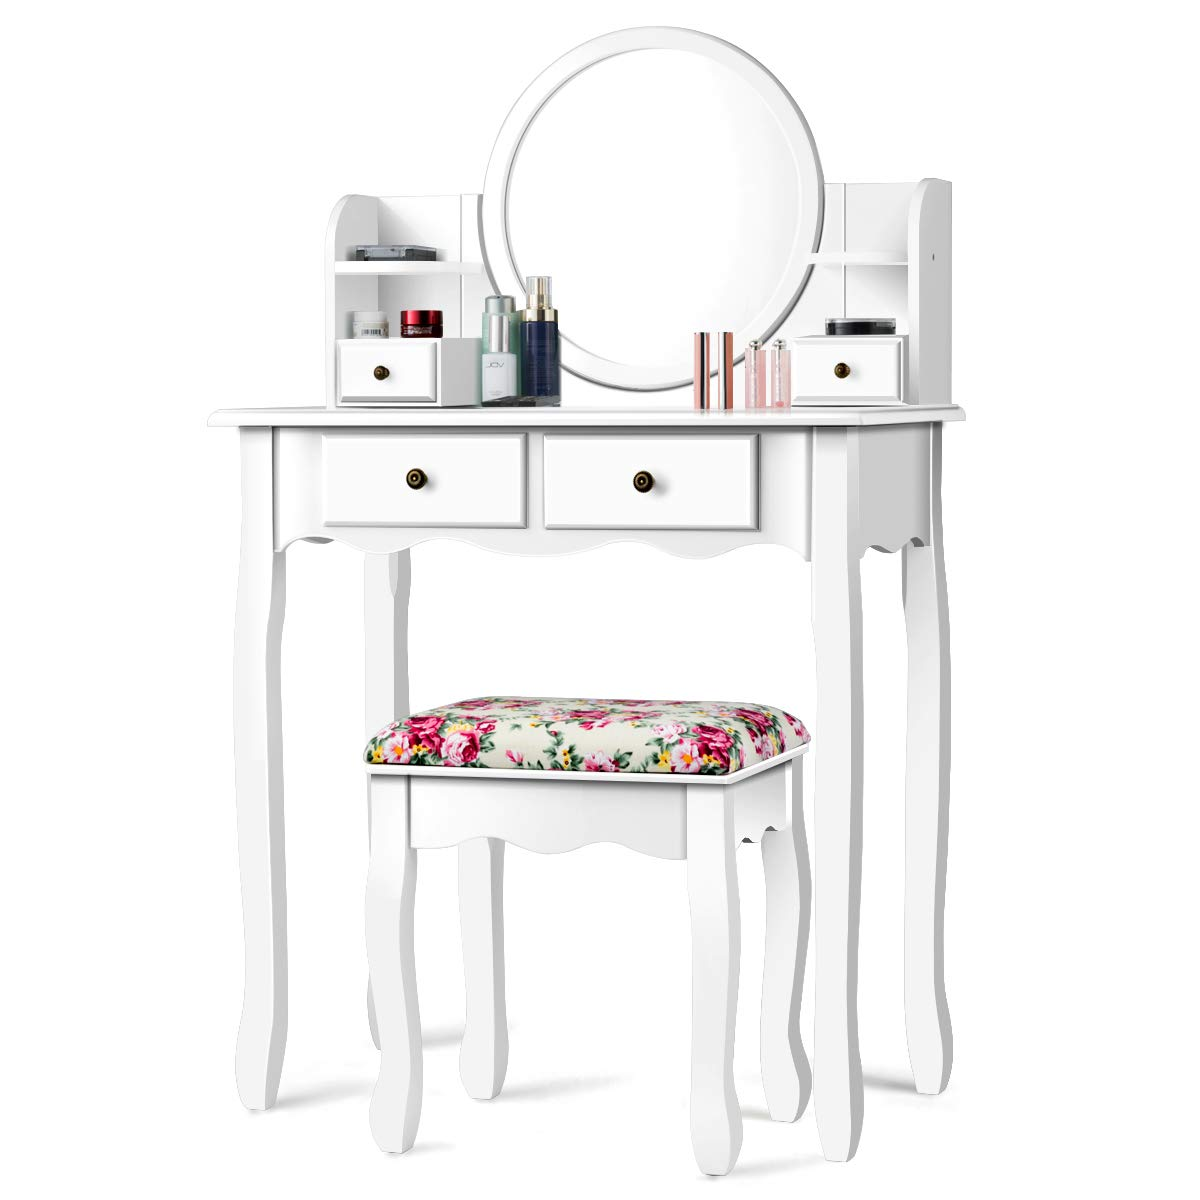 CHARMAID Vanity Set with 4 Storage Shelves and 4 Drawers, Makeup Table with 360 Pivoted Round Mirror and Makeup Organizers, Dressing Table with Mirror and Cushioned Stool for Women Girls White